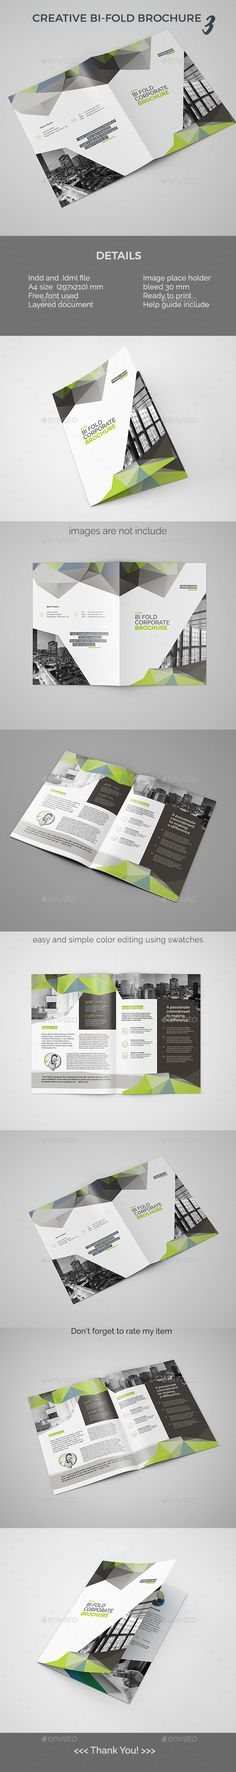 Business Square BiFold Brochure Template Brochures And - Bi fold brochure template indesign